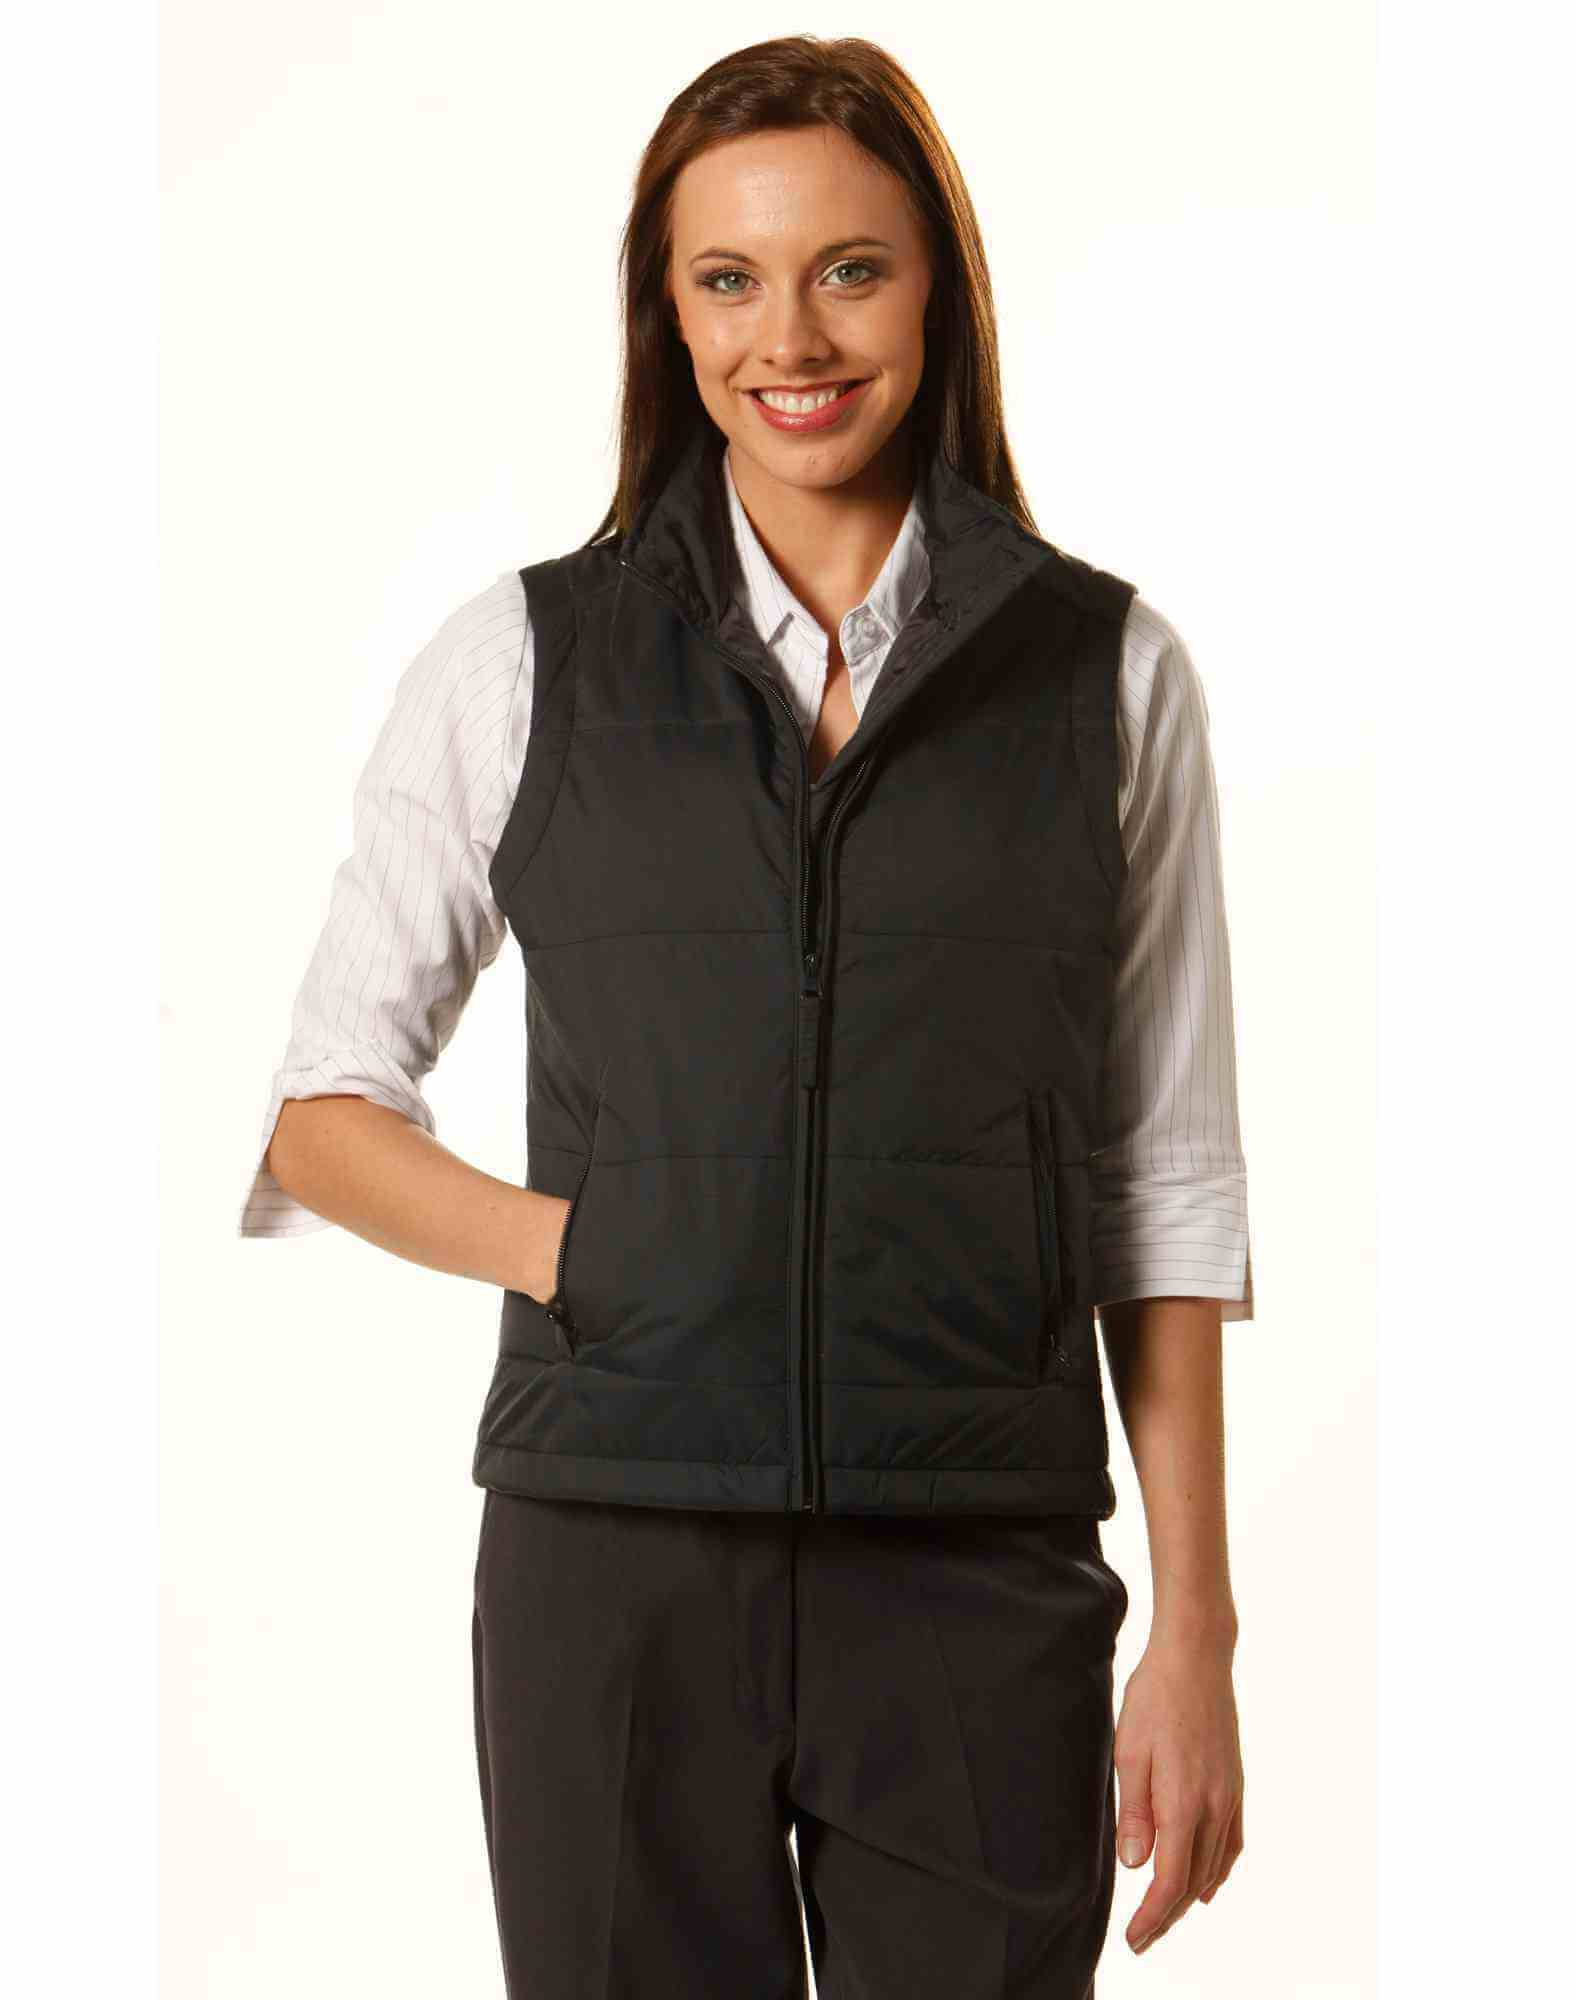 JK30 PADDED VEST Ladies03 08 2015 11 16 28 - JK30 PADDED VEST Ladies